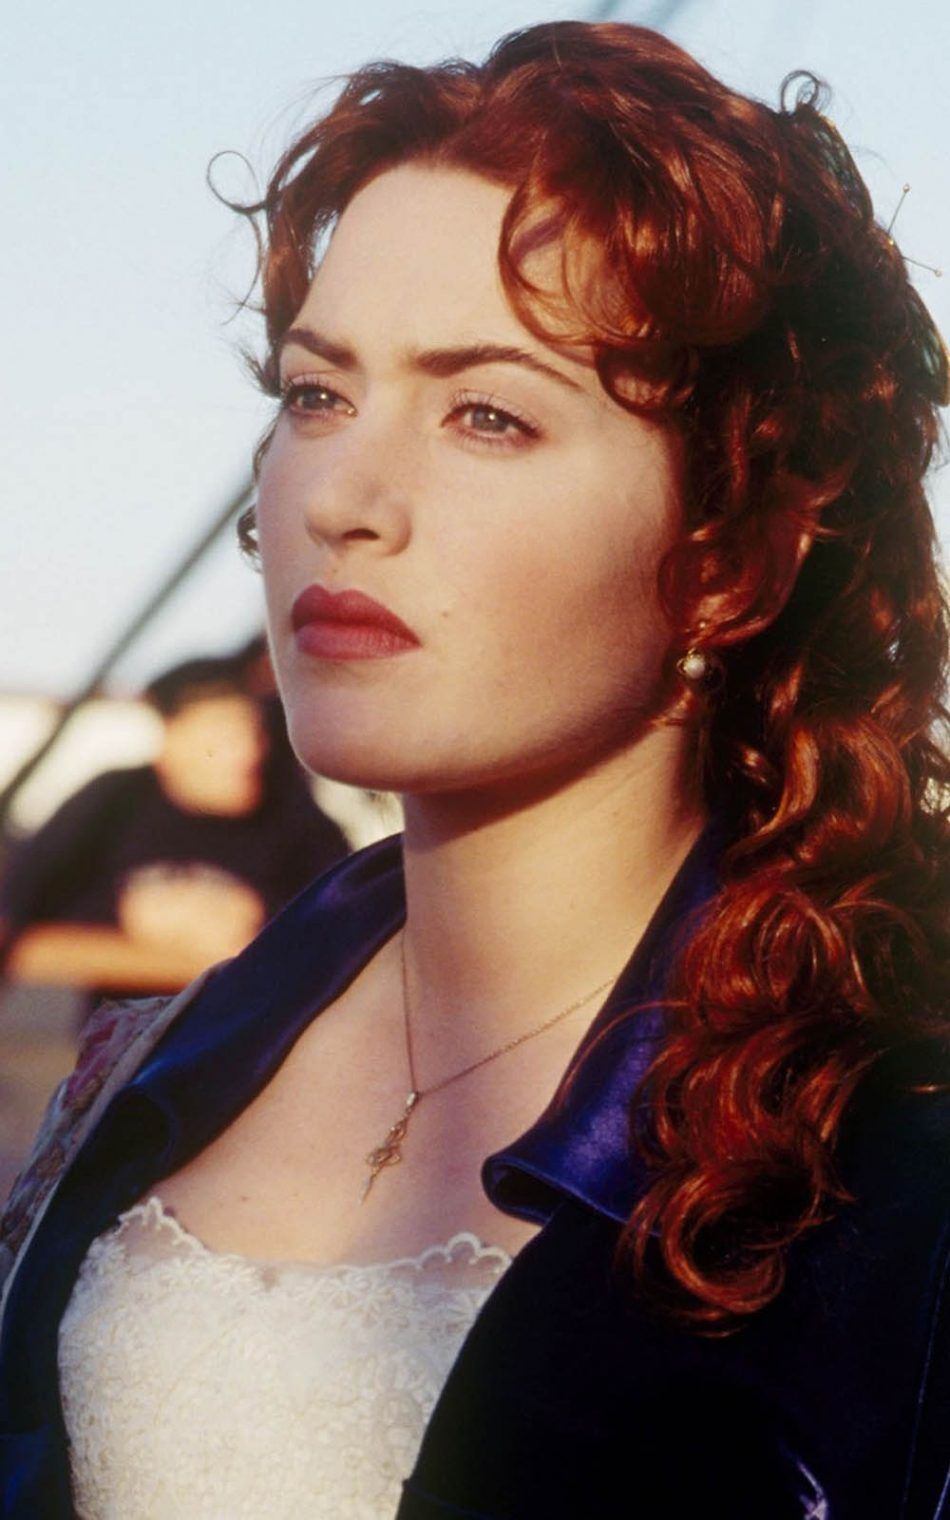 gorgeous kate winslet in titanic - download free pure 4k ultra hd